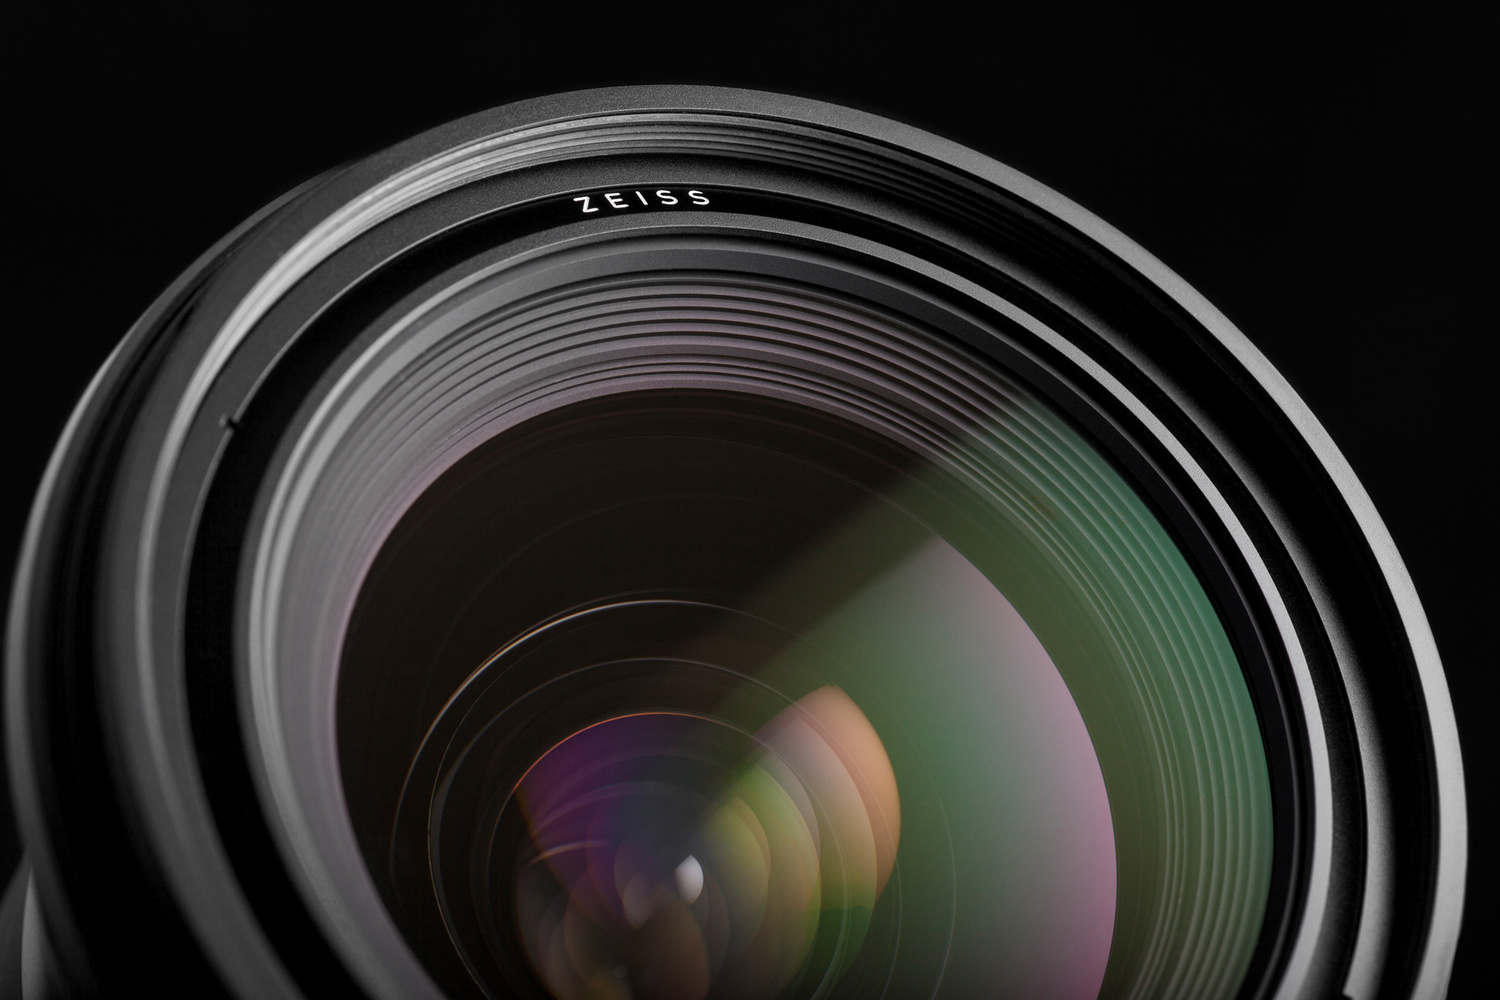 zeiss-product-photography-lens